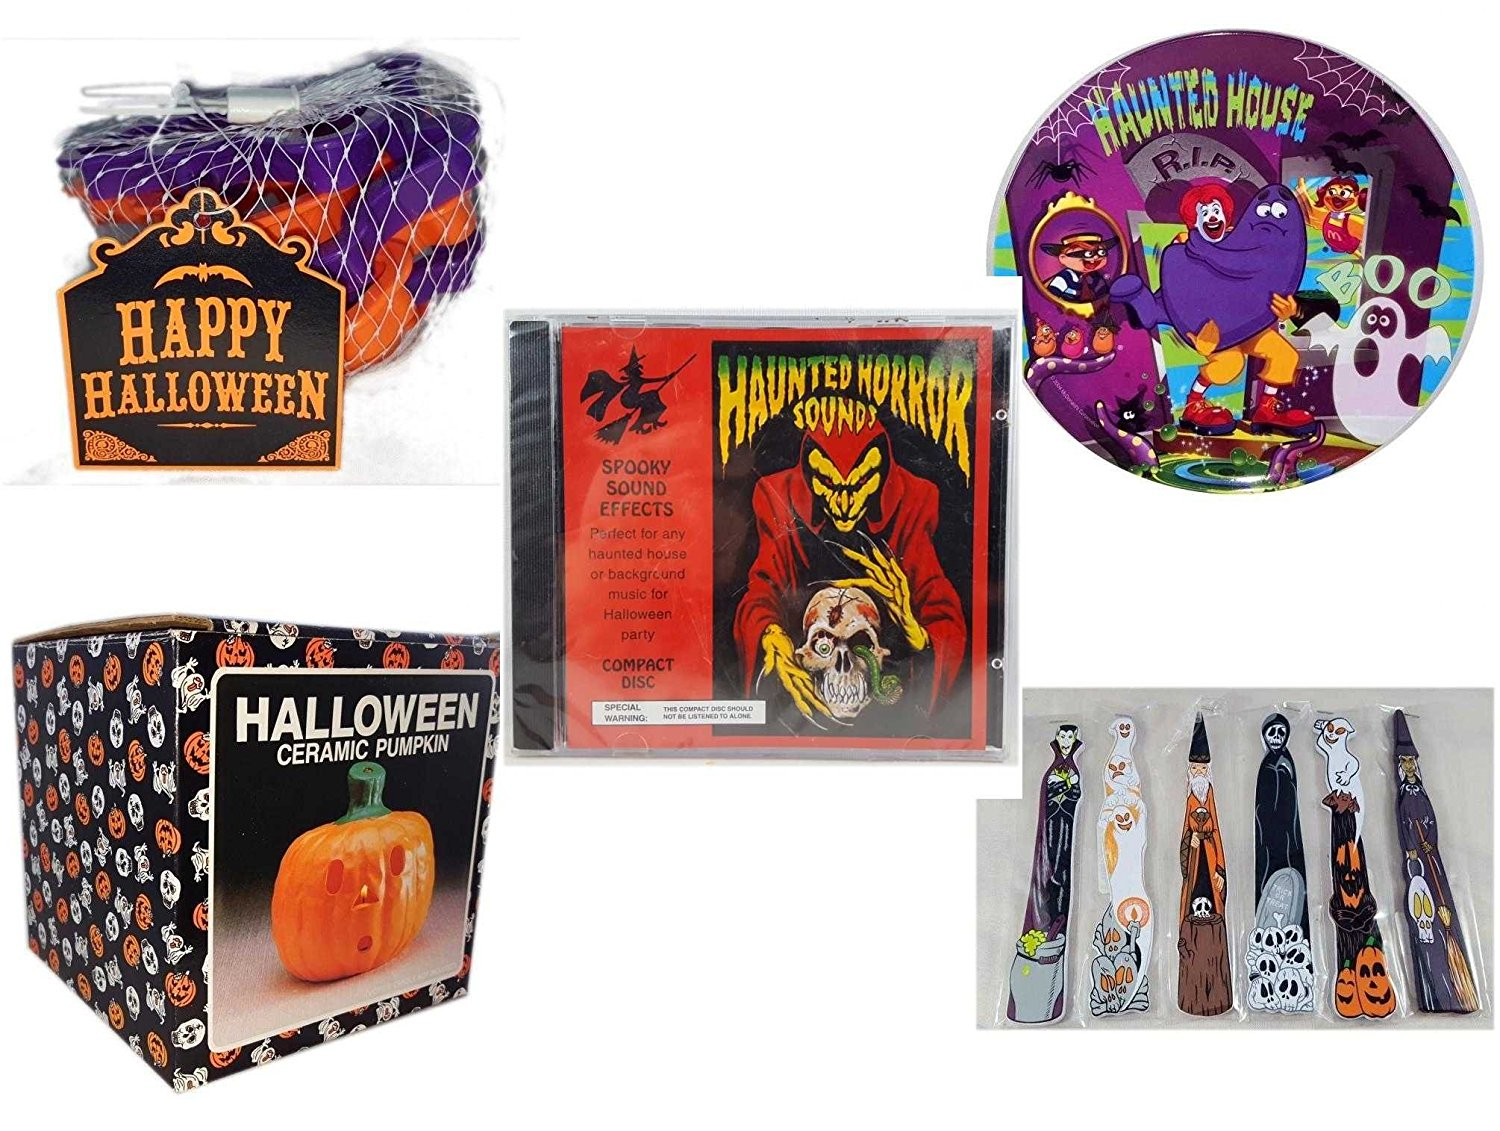 Halloween Fun Gift Bundle [5 piece] - Wilton 6-Piece Halloween Cookie Cutter Set - McDonald's Haunted House, RIP, Boo Halloween Plate - Haunted Horror Sounds CD - Halloween Ceramic Pumpkin Candle Ho